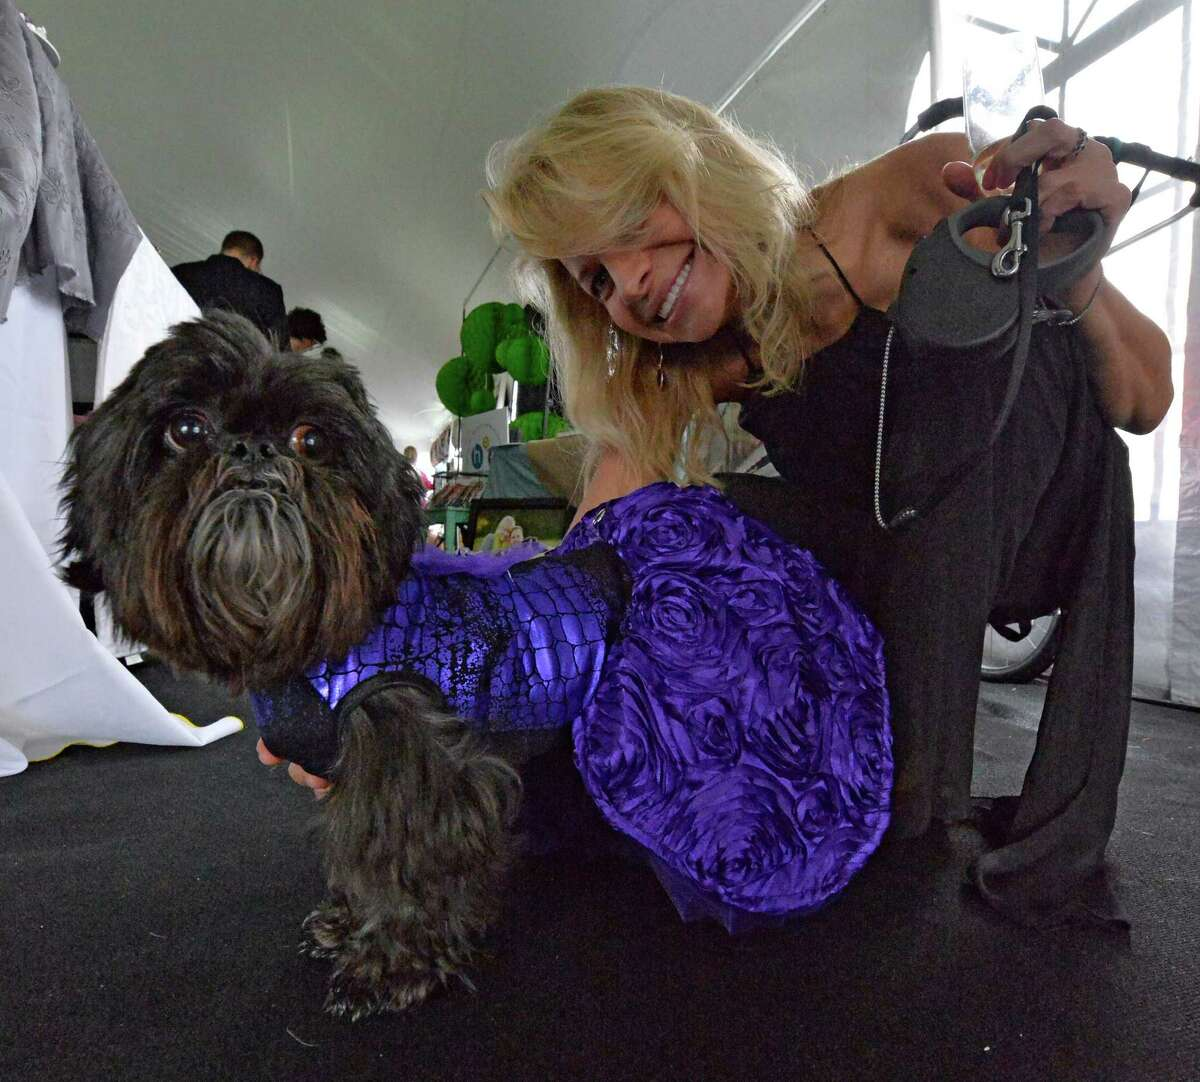 Christine Smith accompanies Tucker in his dress at the American Cancer Society's annual fundraiser Dogs & Divas Fashion Show Thursday June 13, 2013 at the Saratoga National Golf Course in Saratoga Springs, N.Y. (Skip Dickstein/Times Union)